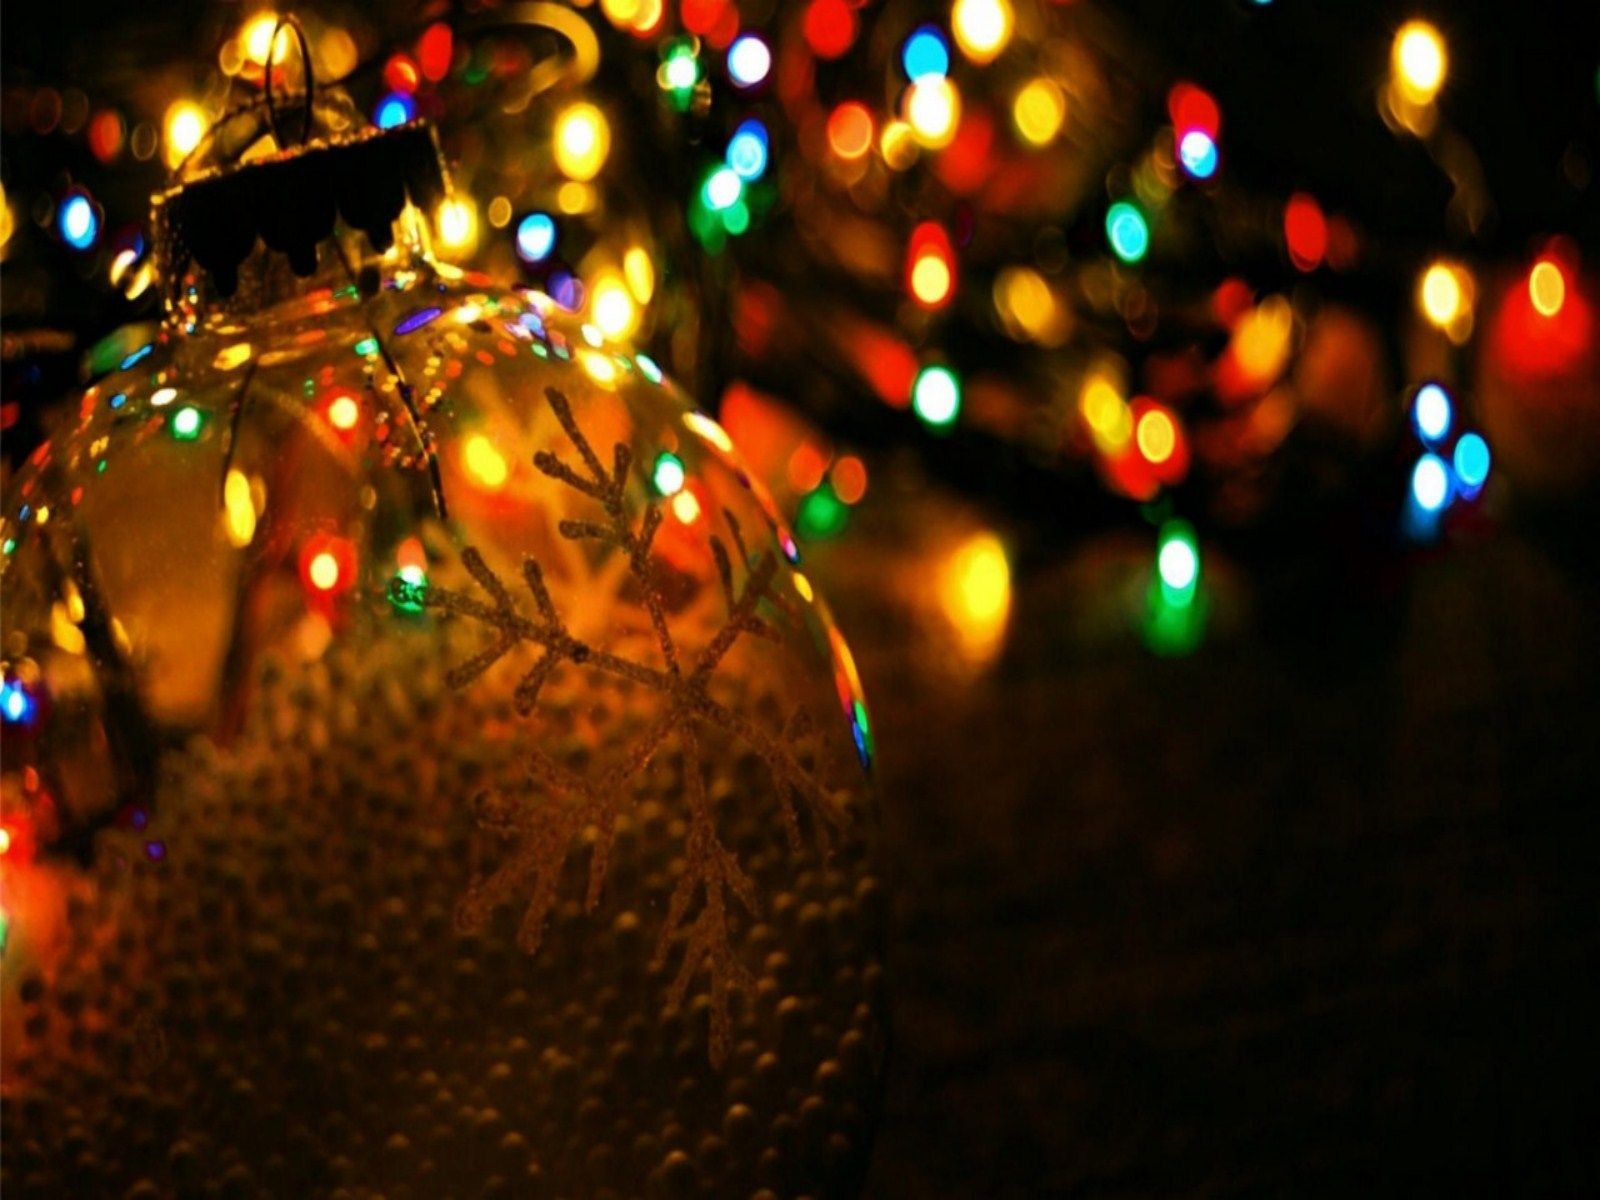 Gold Wallpaper Hd For Iphone 6 Christmas Lights Photos Christmas Lights Background